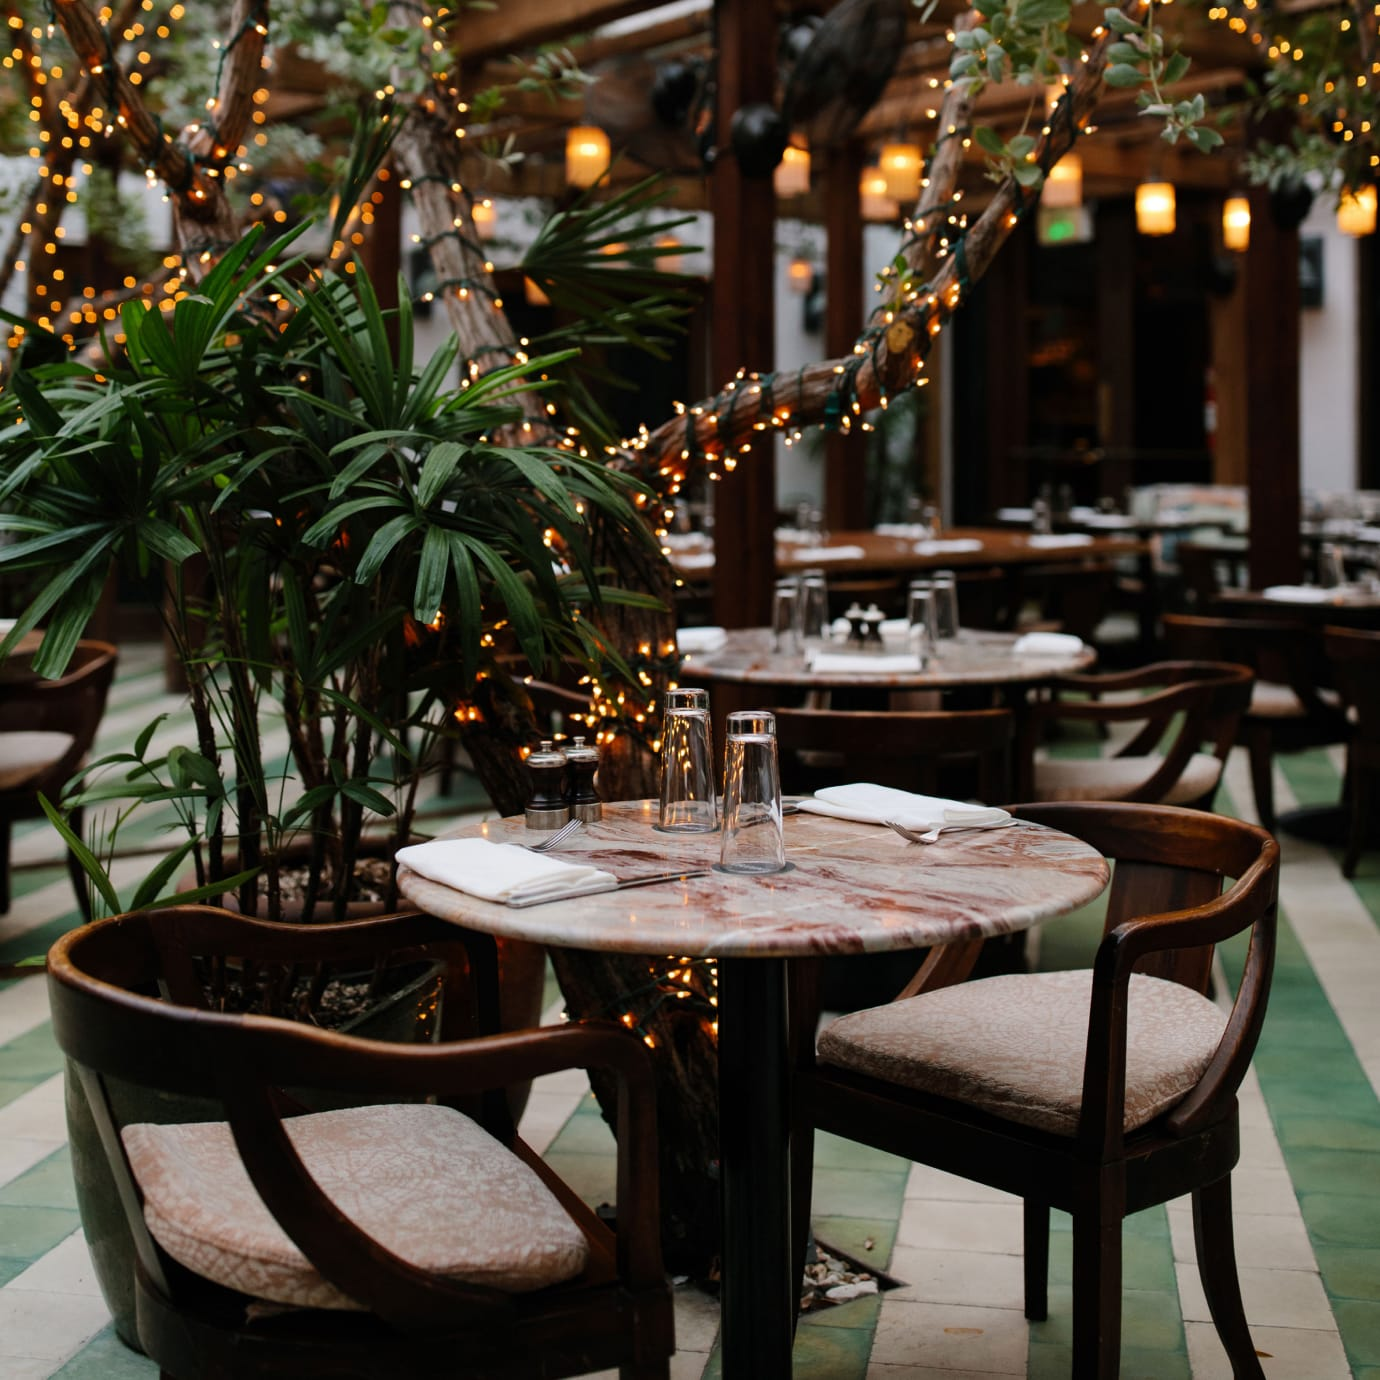 A restaurant interior with plant and trees around the tables and fairy lights on the trees.